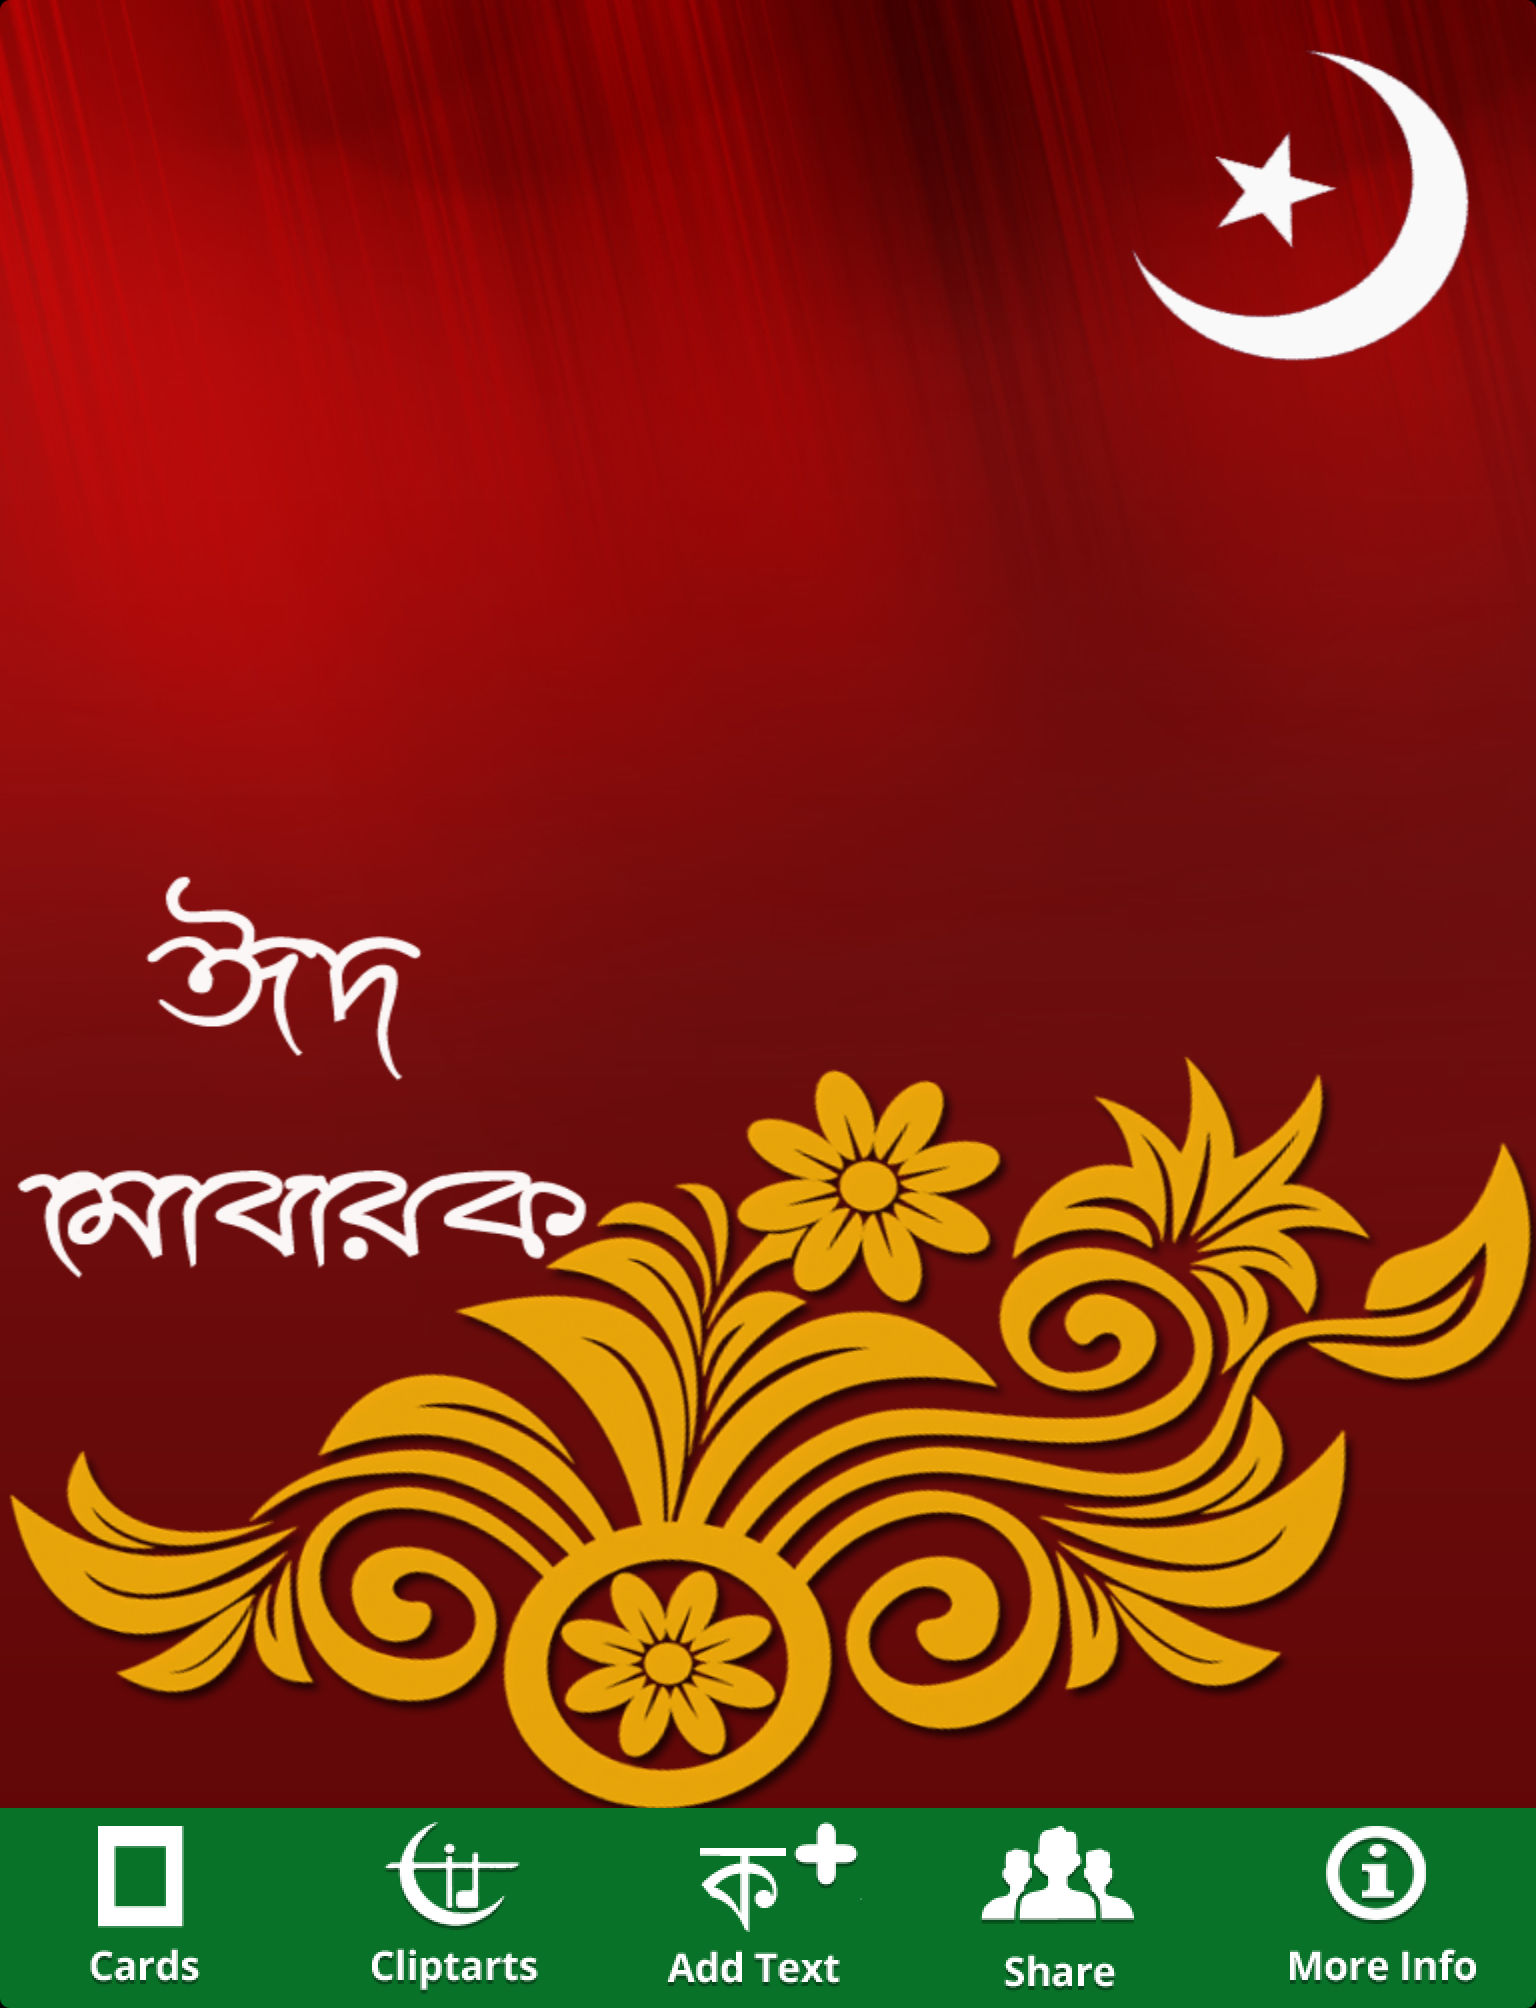 Bangla Eid Card Create Custom Eid Cards App Ranking and Store